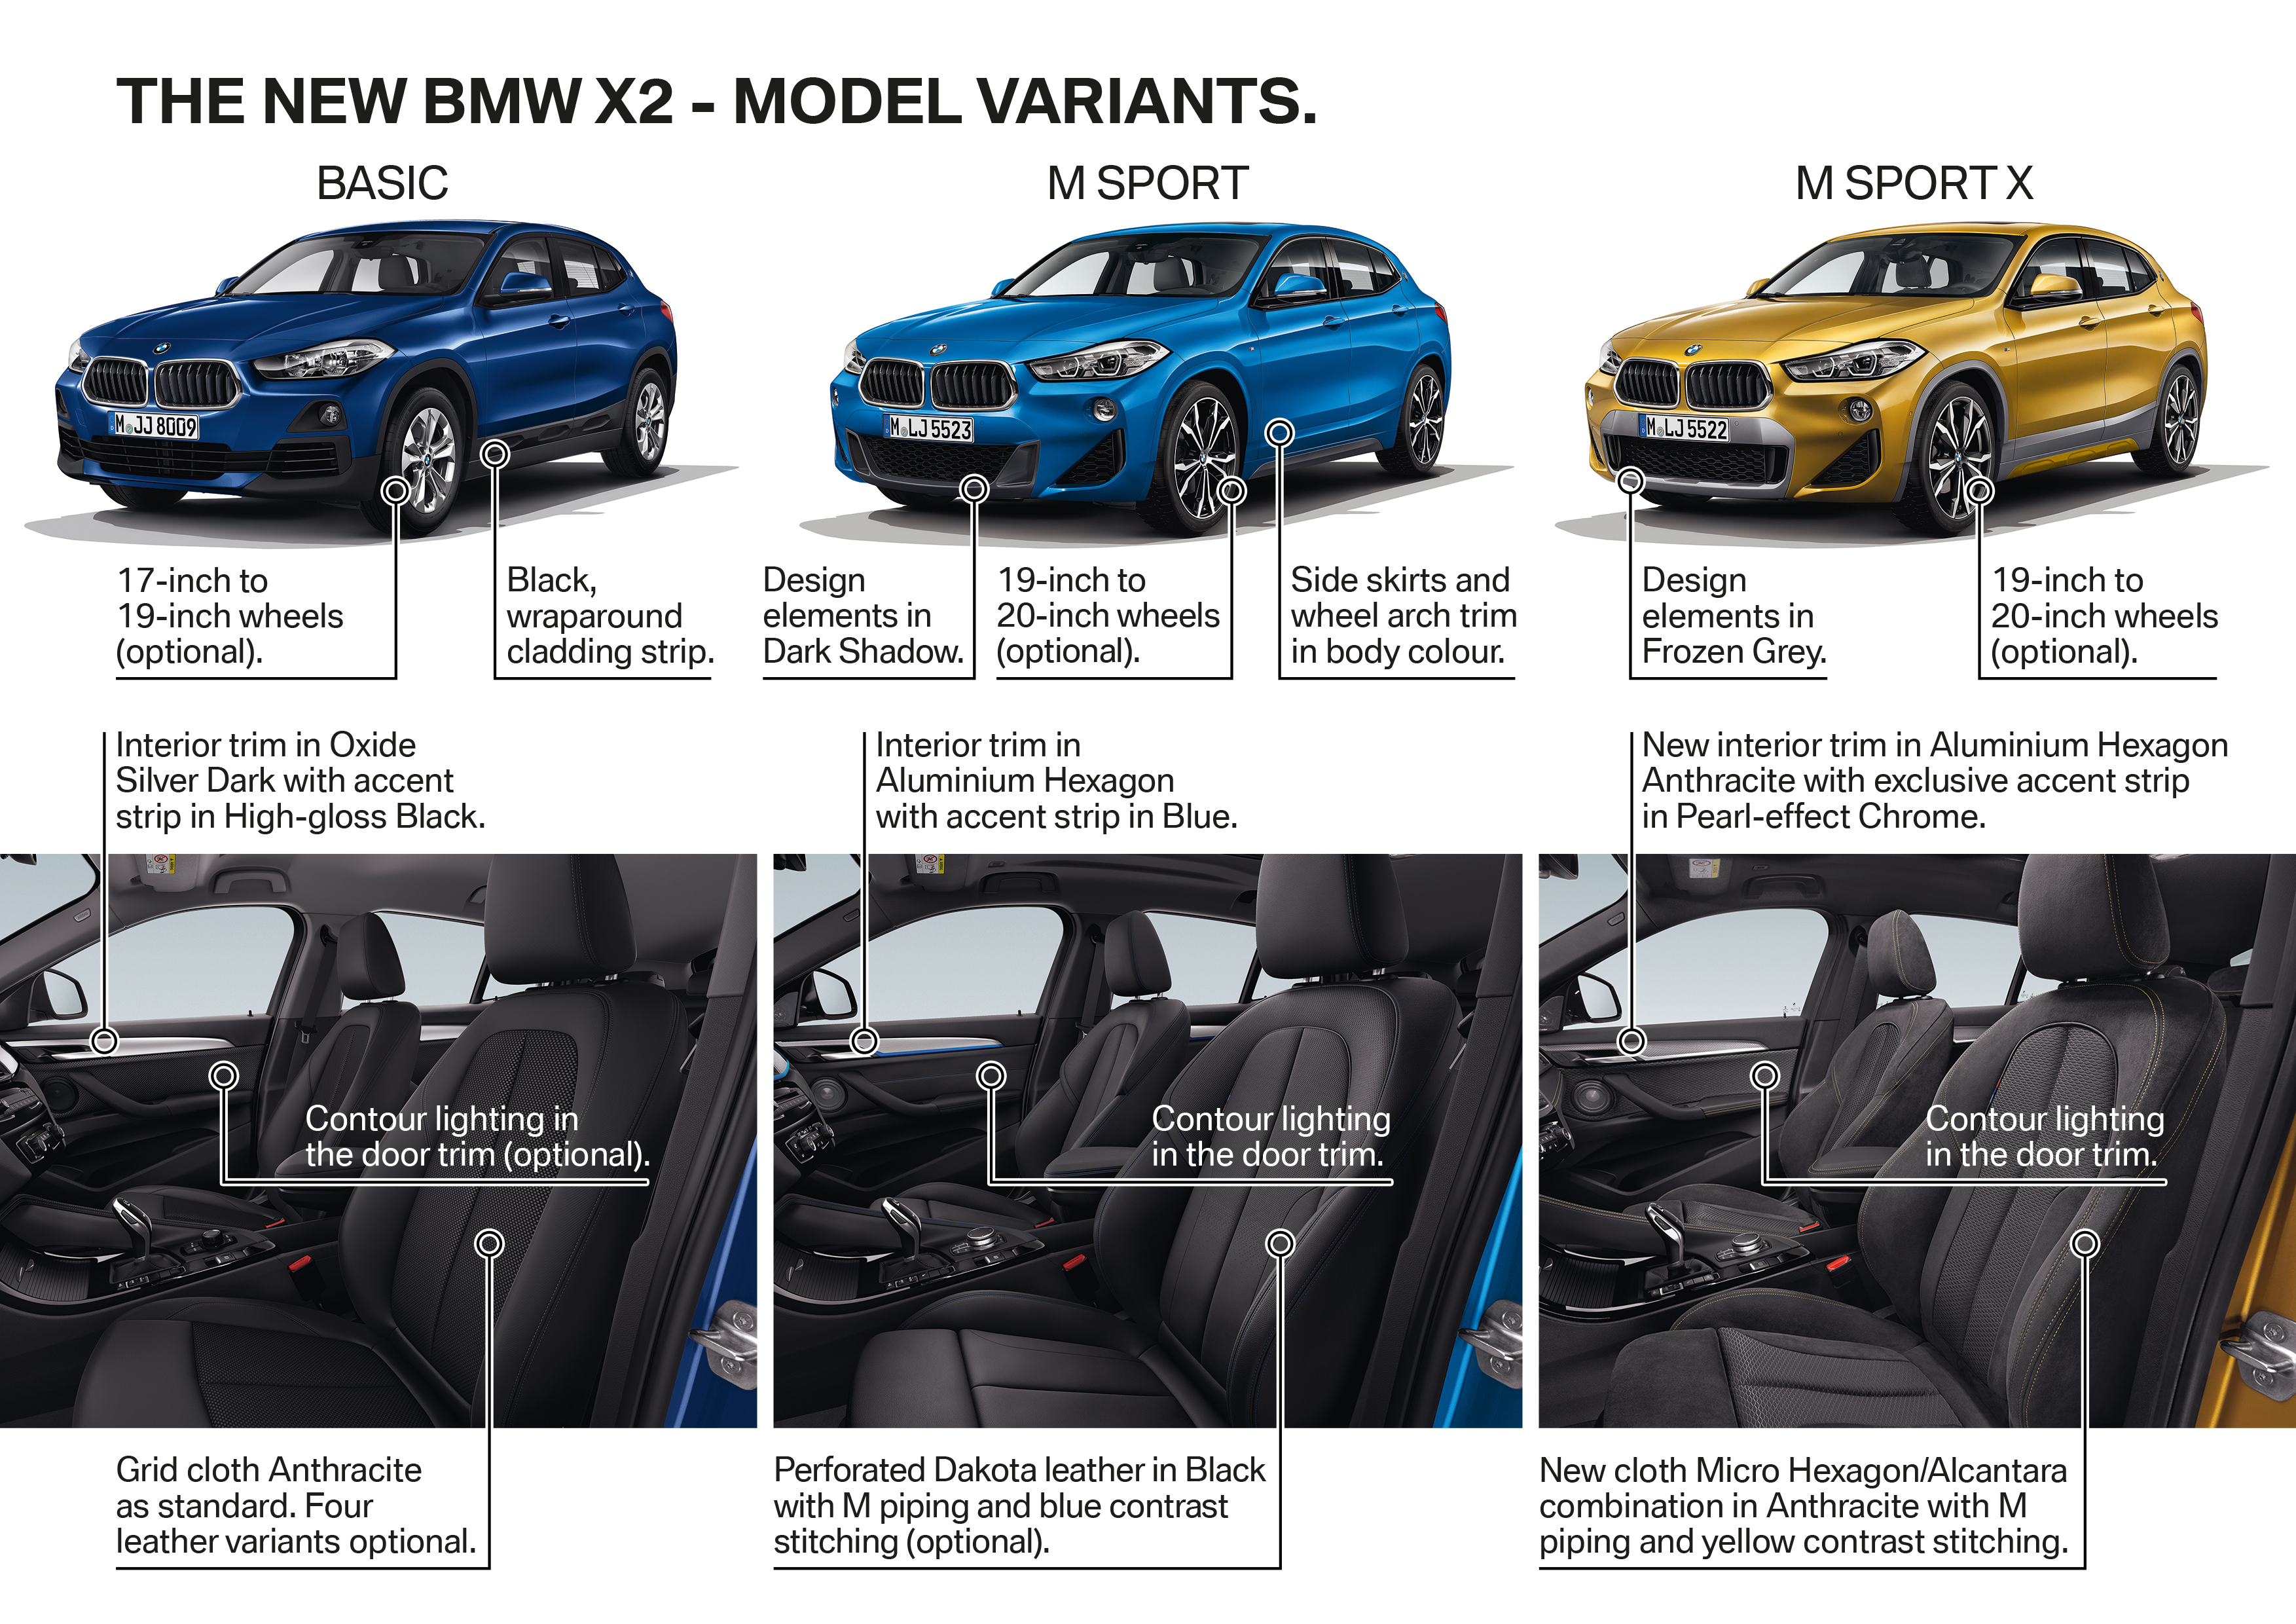 f39 bmw x2 unveiled with new m sport x package paul tan image 729025. Black Bedroom Furniture Sets. Home Design Ideas